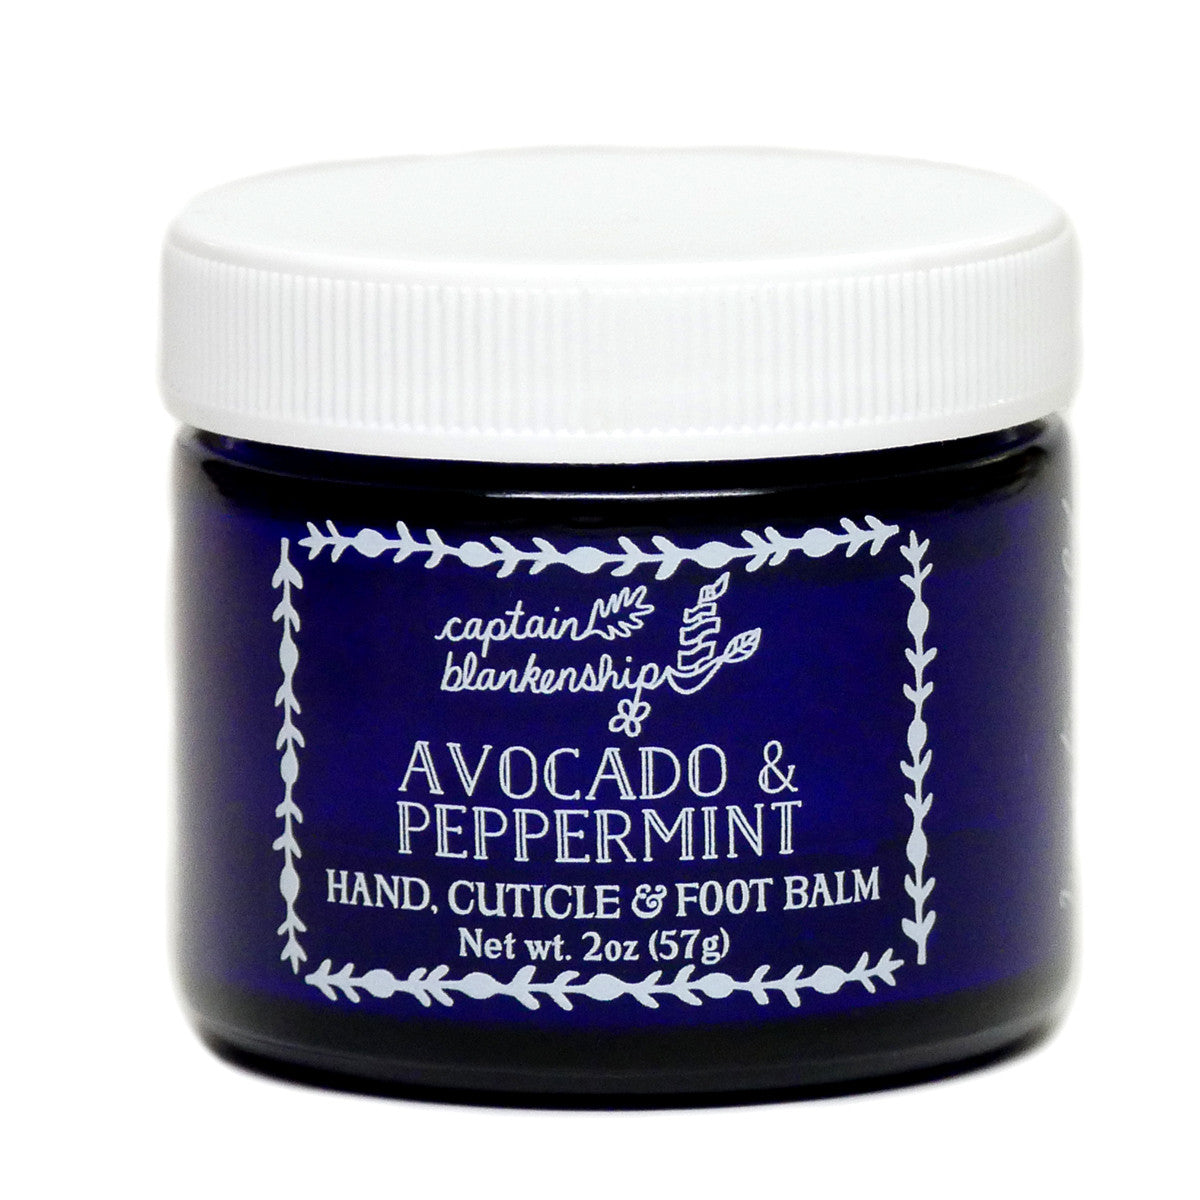 Avocado & Peppermint Hand, Cuticle and Foot Balm